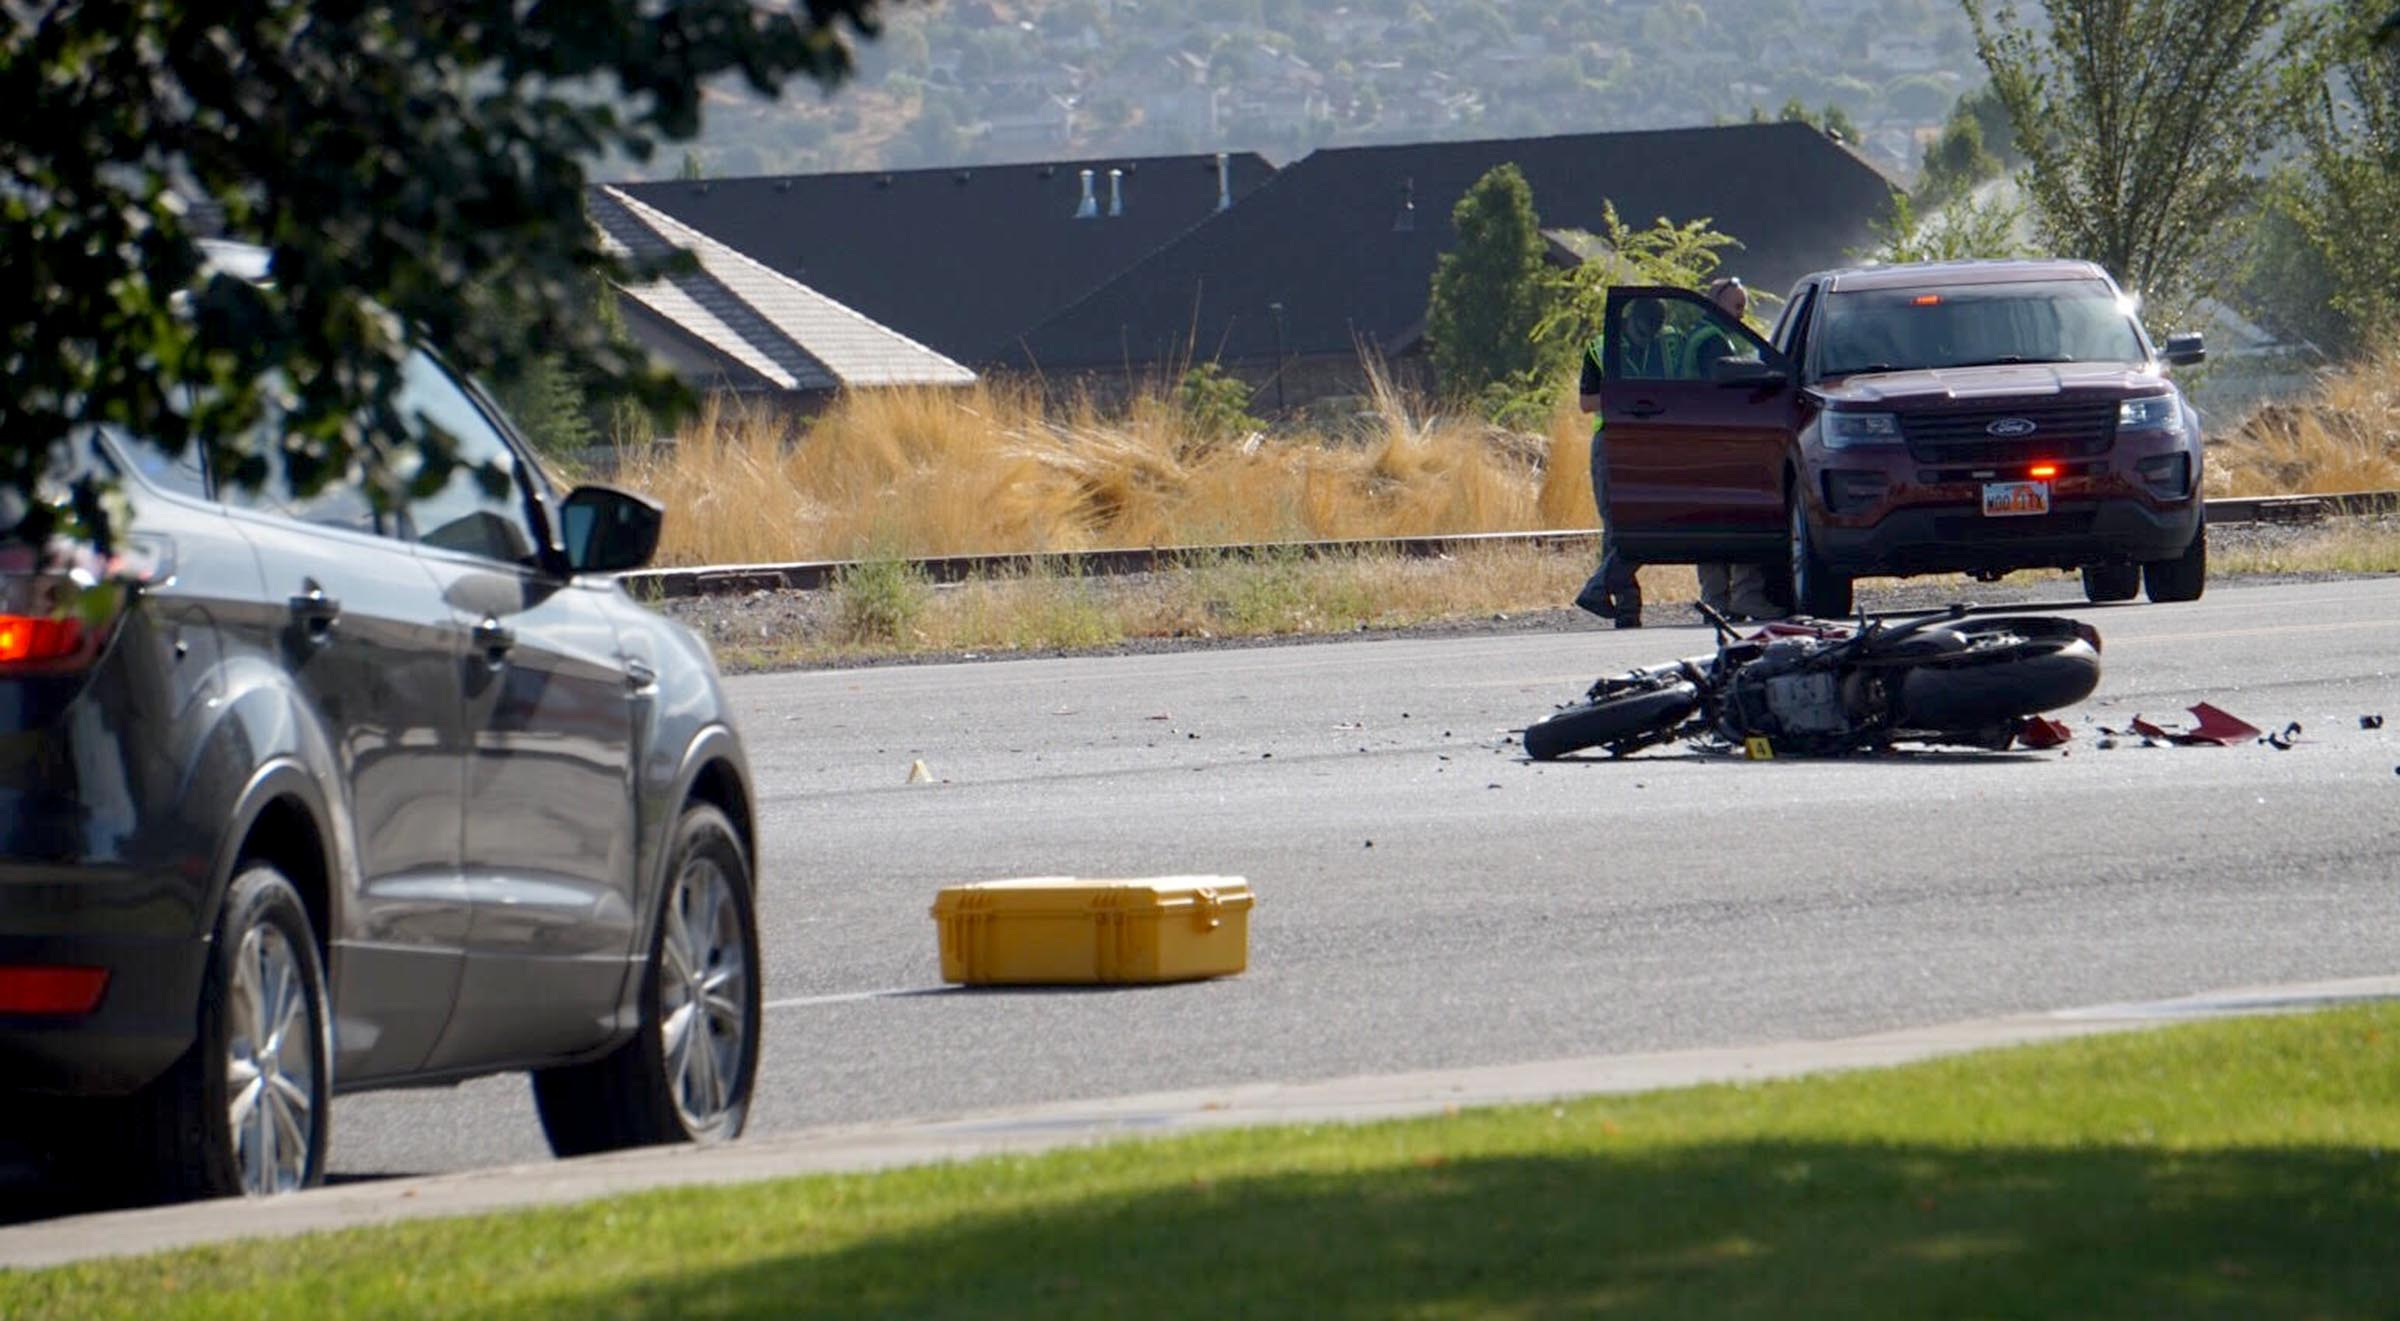 Motorcyclist Killed In Crash In American Fork Deseret News